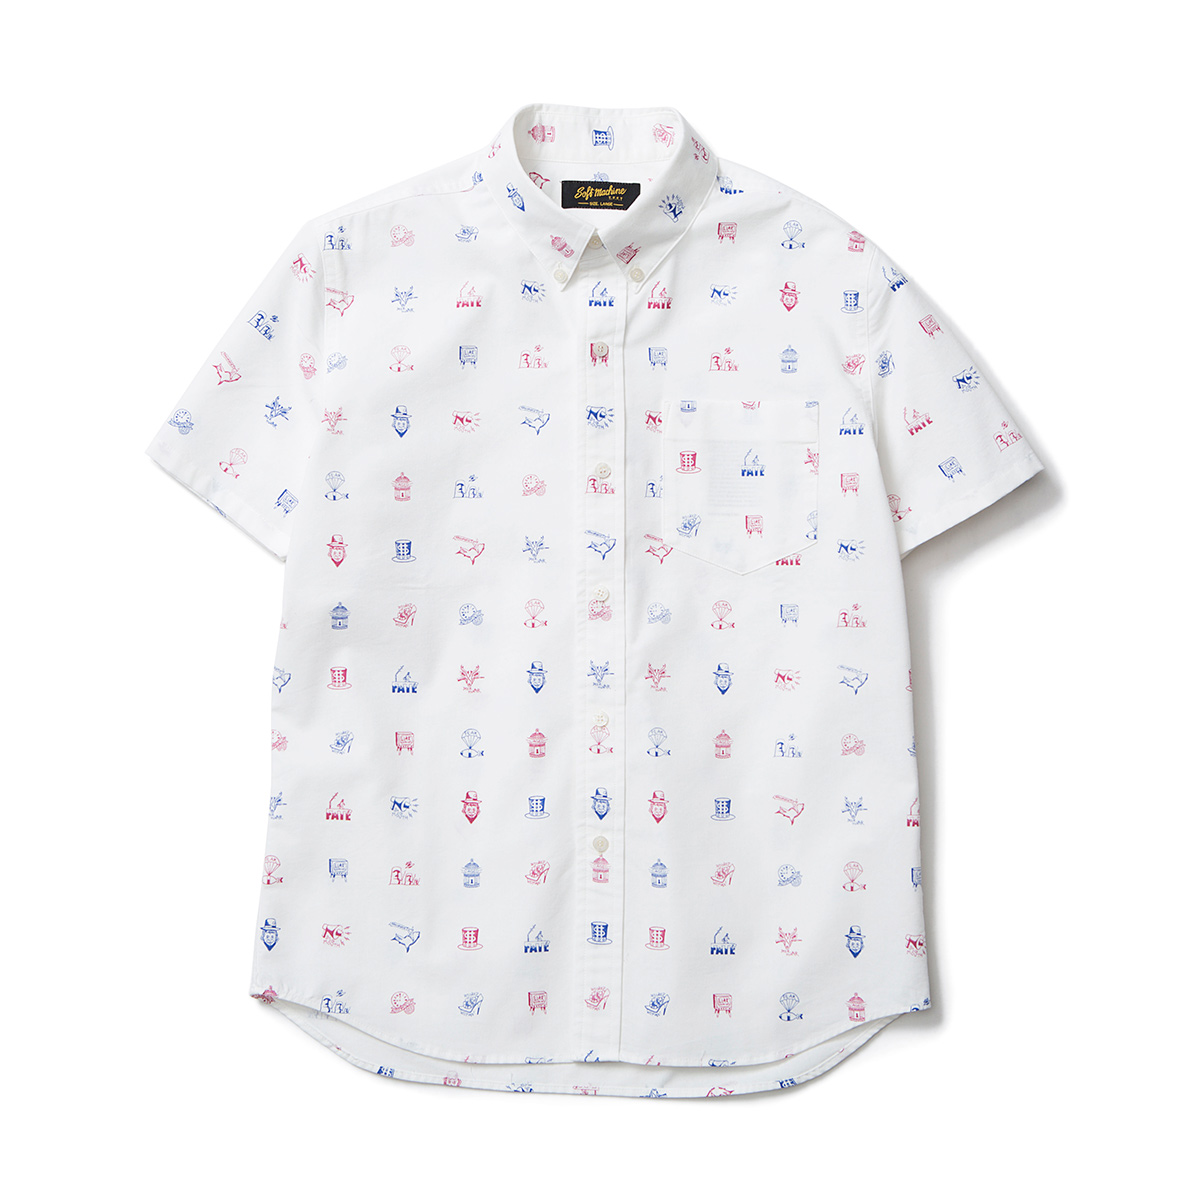 ILLUSION SHIRTS S/S